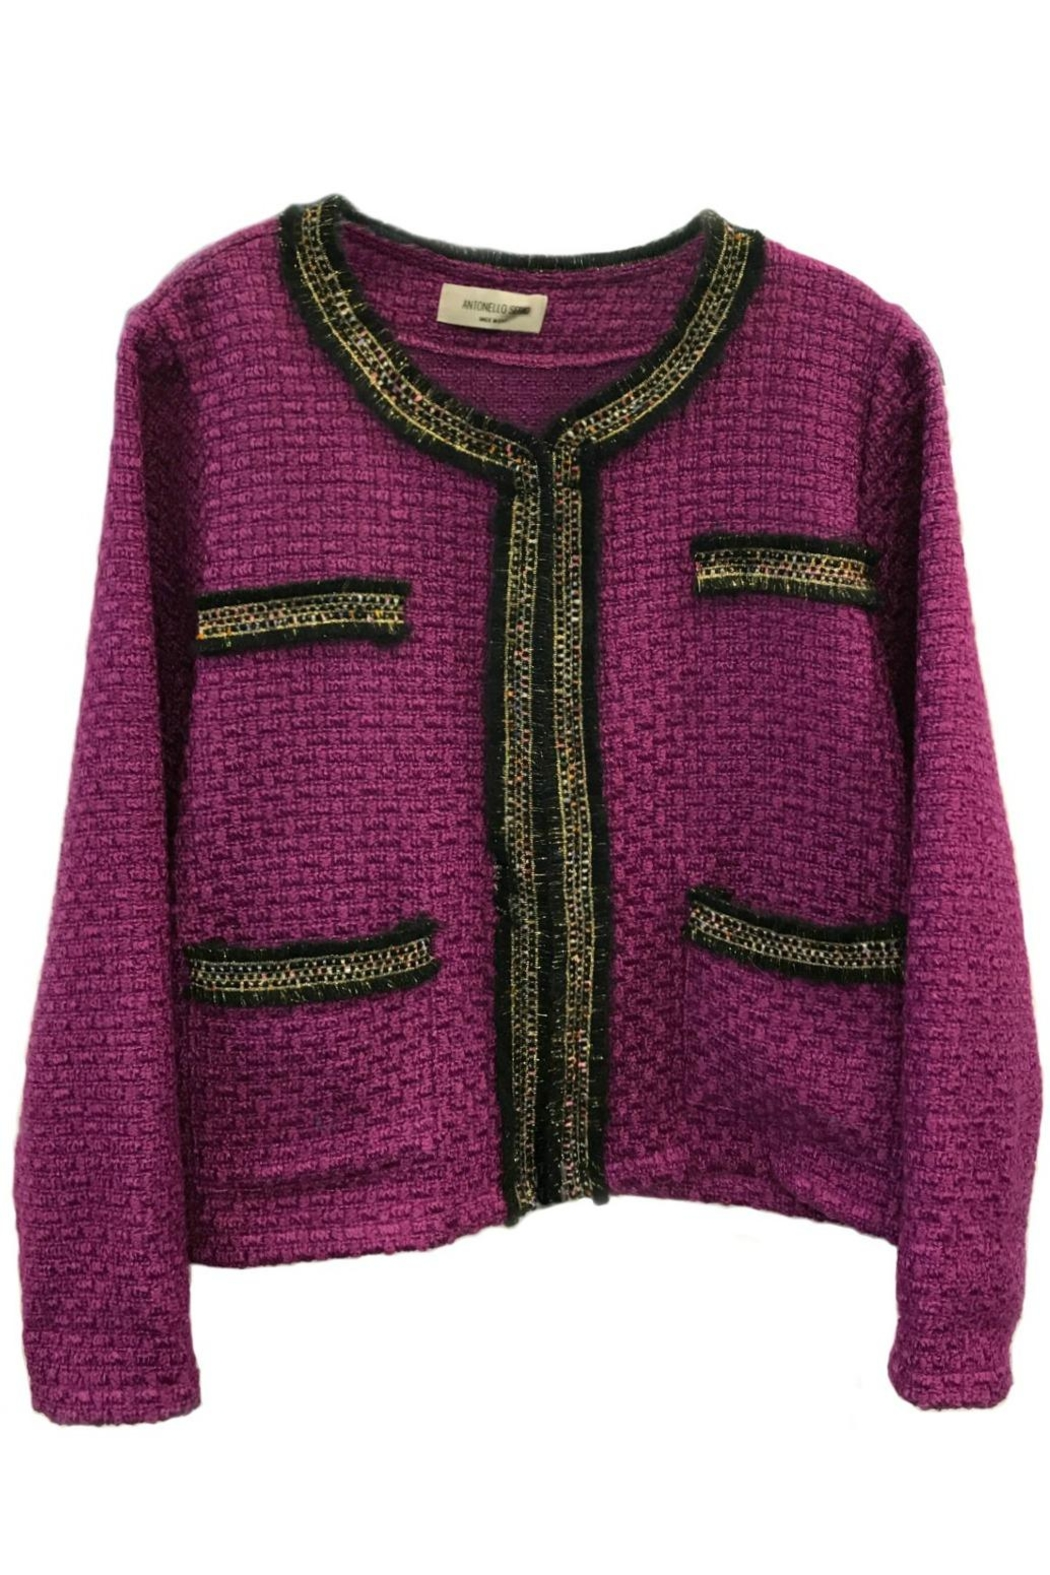 ANTONELLO SERIO Crop Tweed Blazer - Main Image